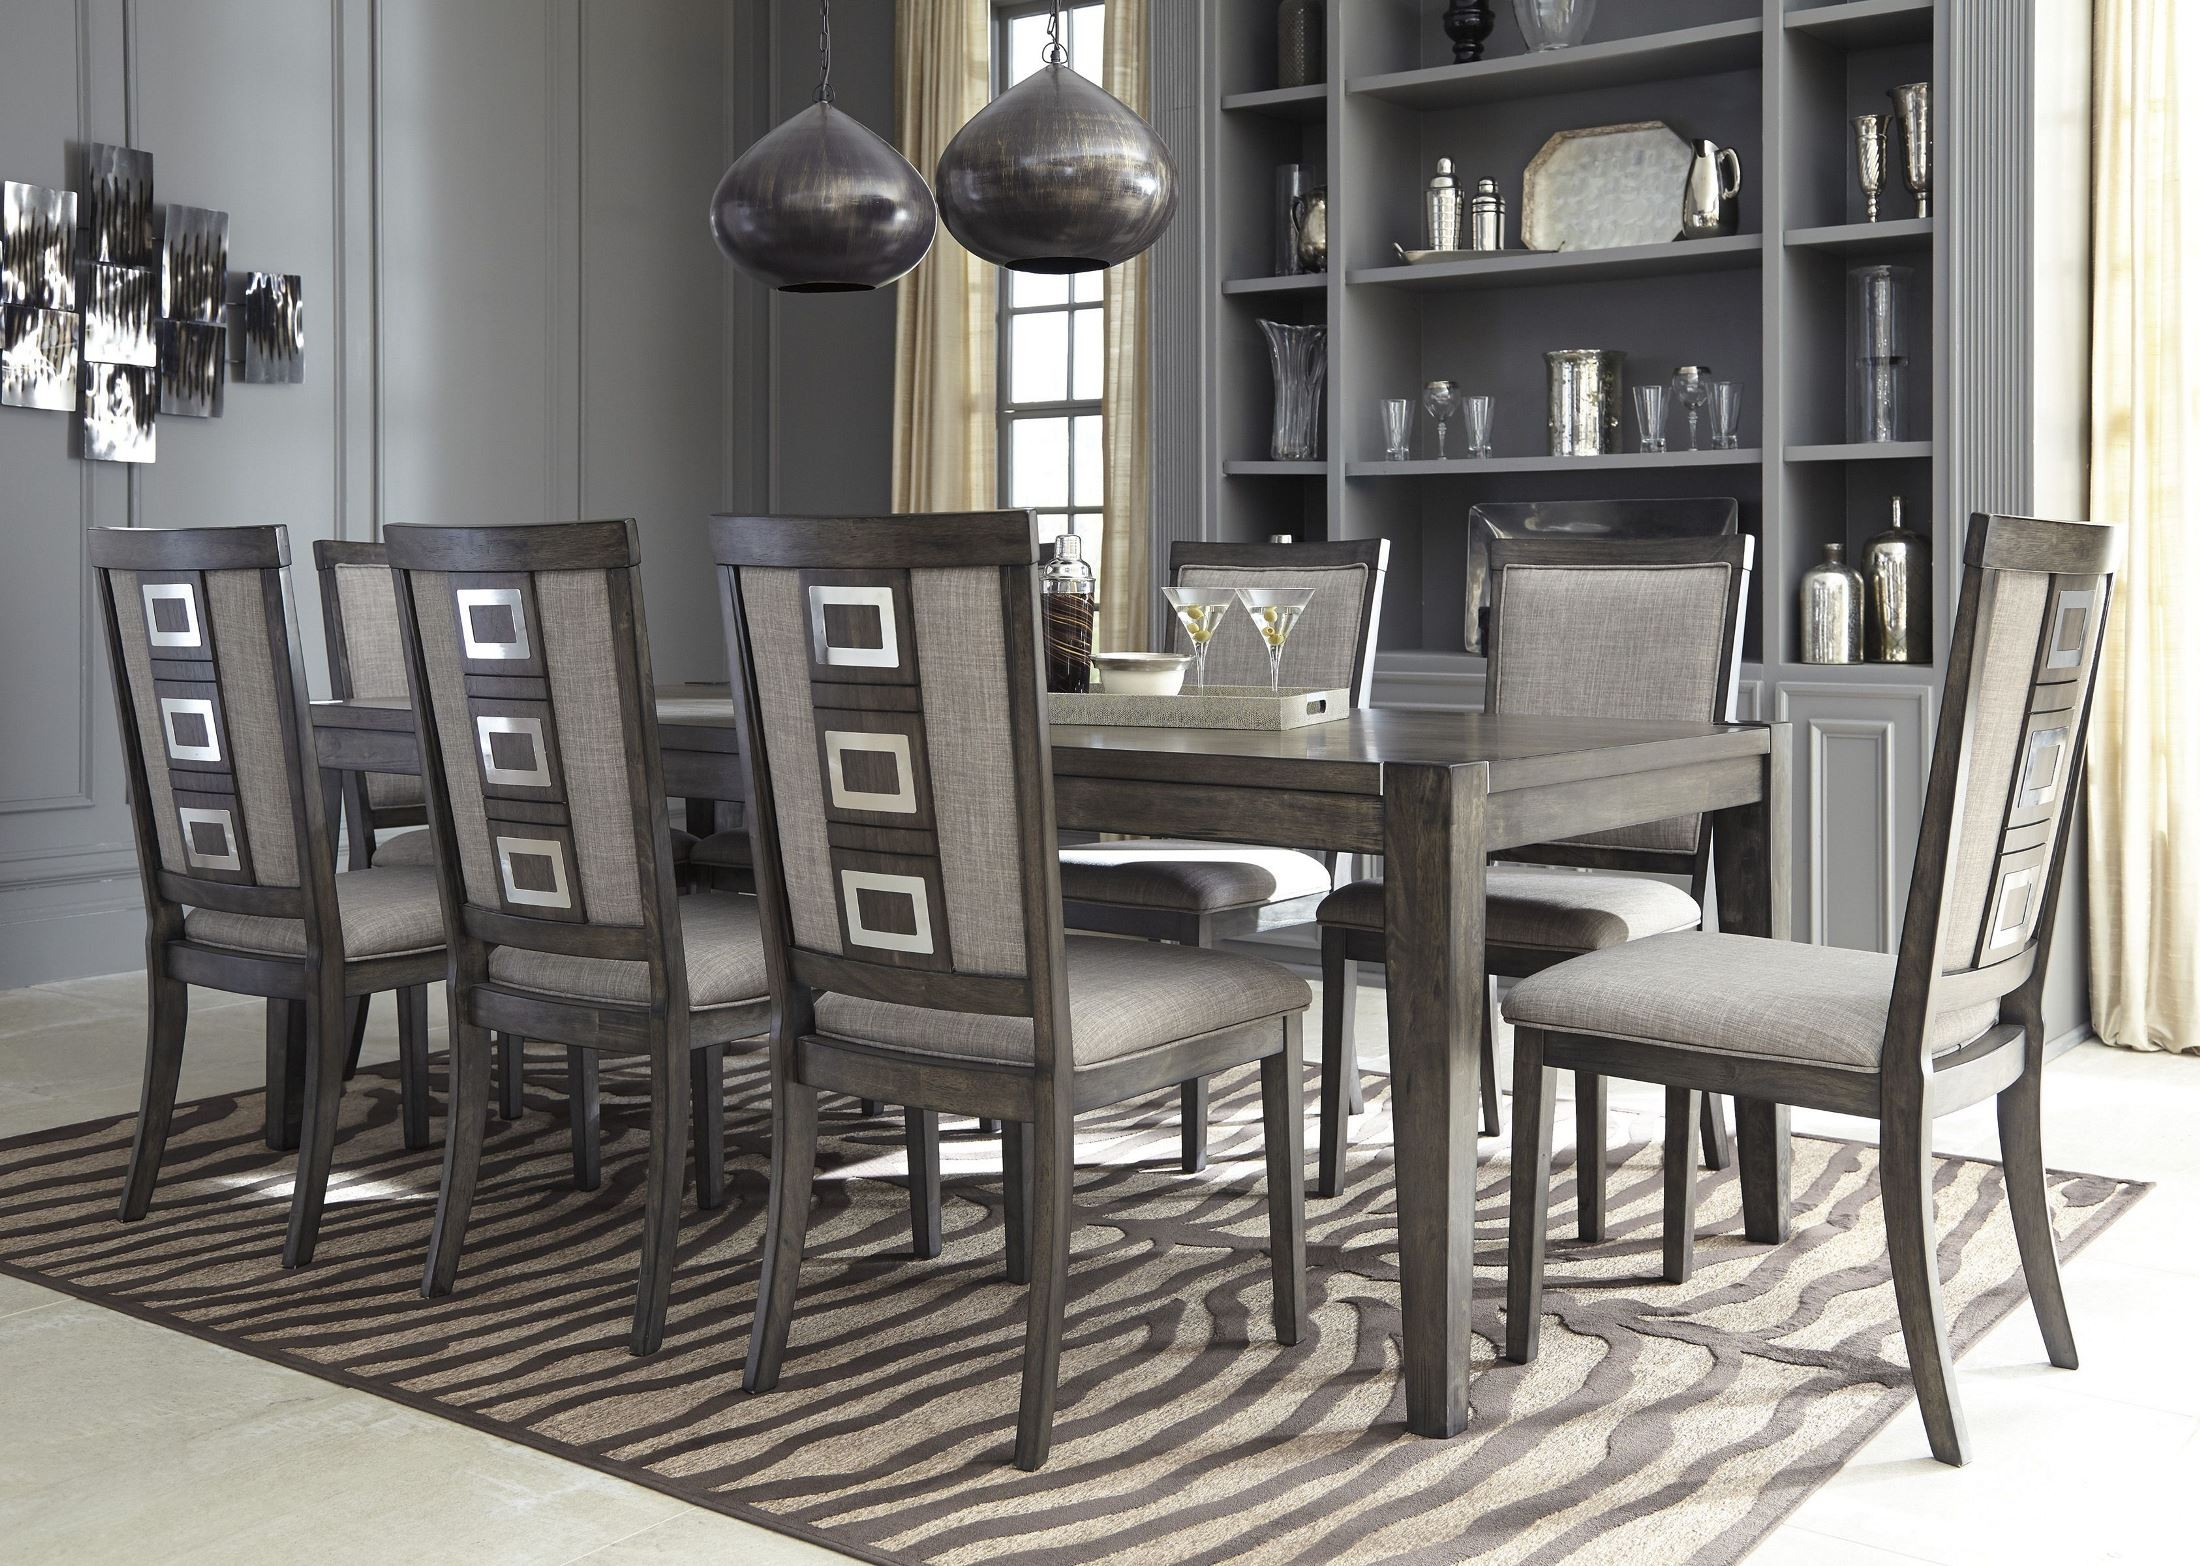 Chadoni Gray Rectangular Extendable Dining Room Set from  : d624 35 018 r40037 from colemanfurniture.com size 2200 x 1566 jpeg 805kB